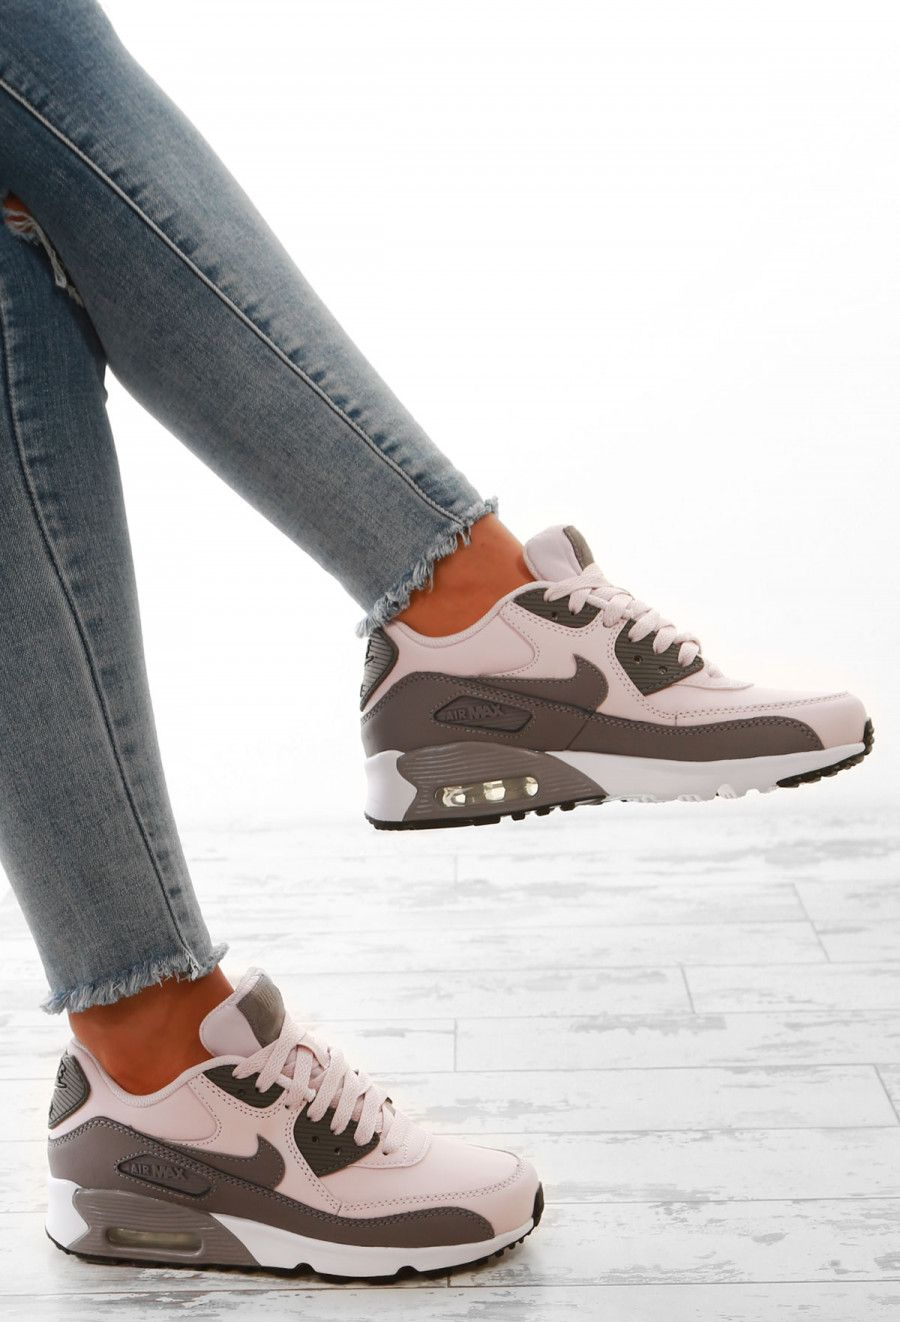 Nike Air Max 90 Grey and Rose Trainers | 2018 Spring